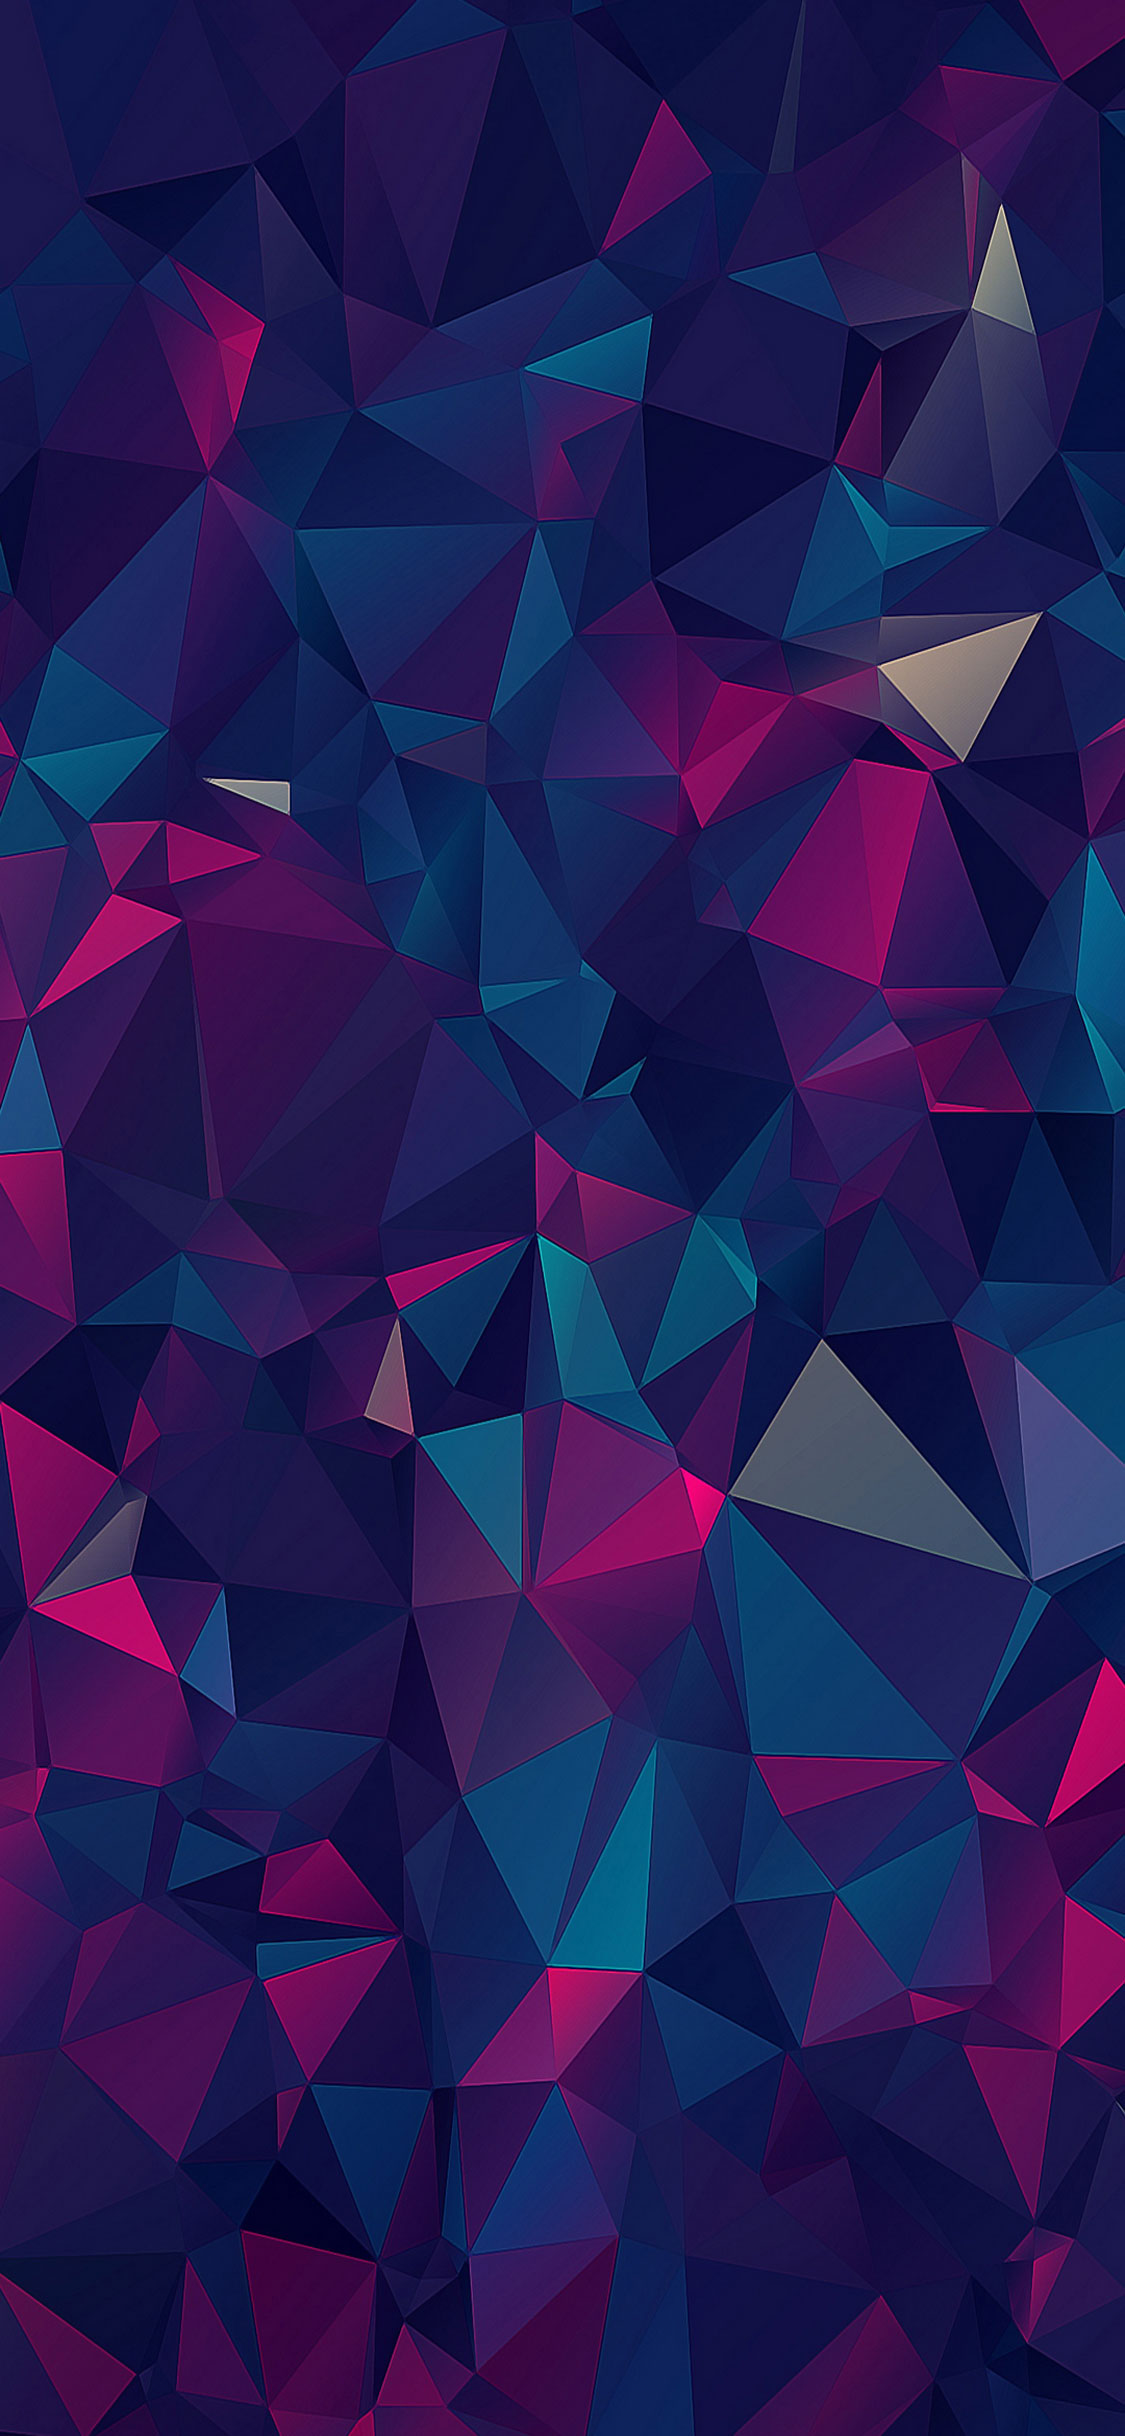 30 New Cool Iphone X Wallpapers Backgrounds To Freshen Up Your Screen